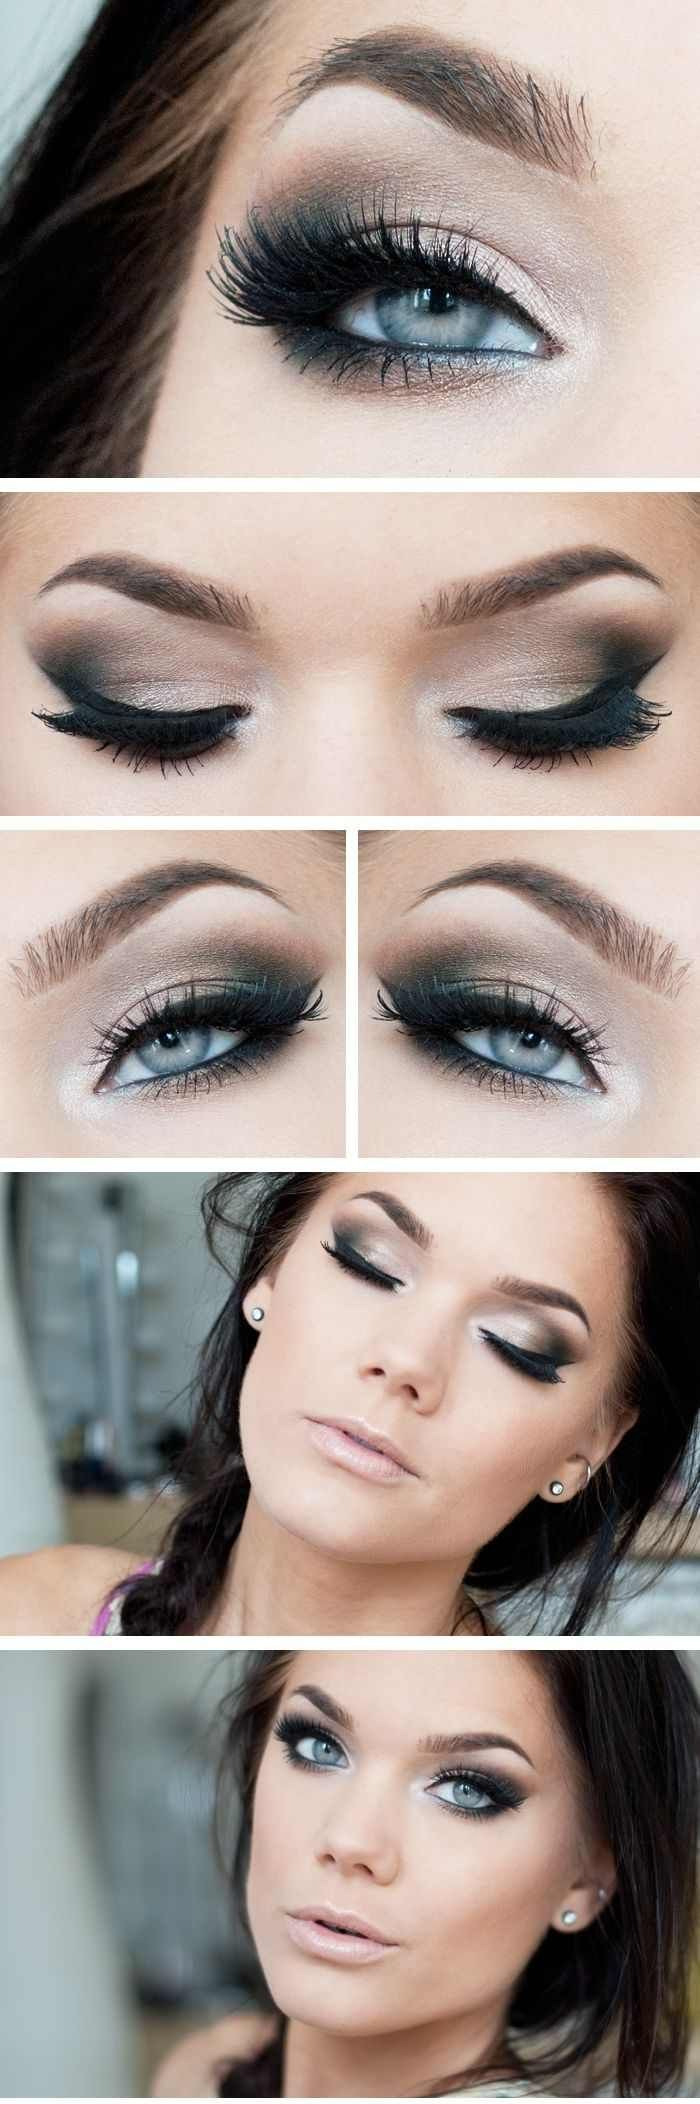 13 Luxurius Abend Make Up Zum Blauen Kleid StylishFormal Cool Abend Make Up Zum Blauen Kleid Boutique